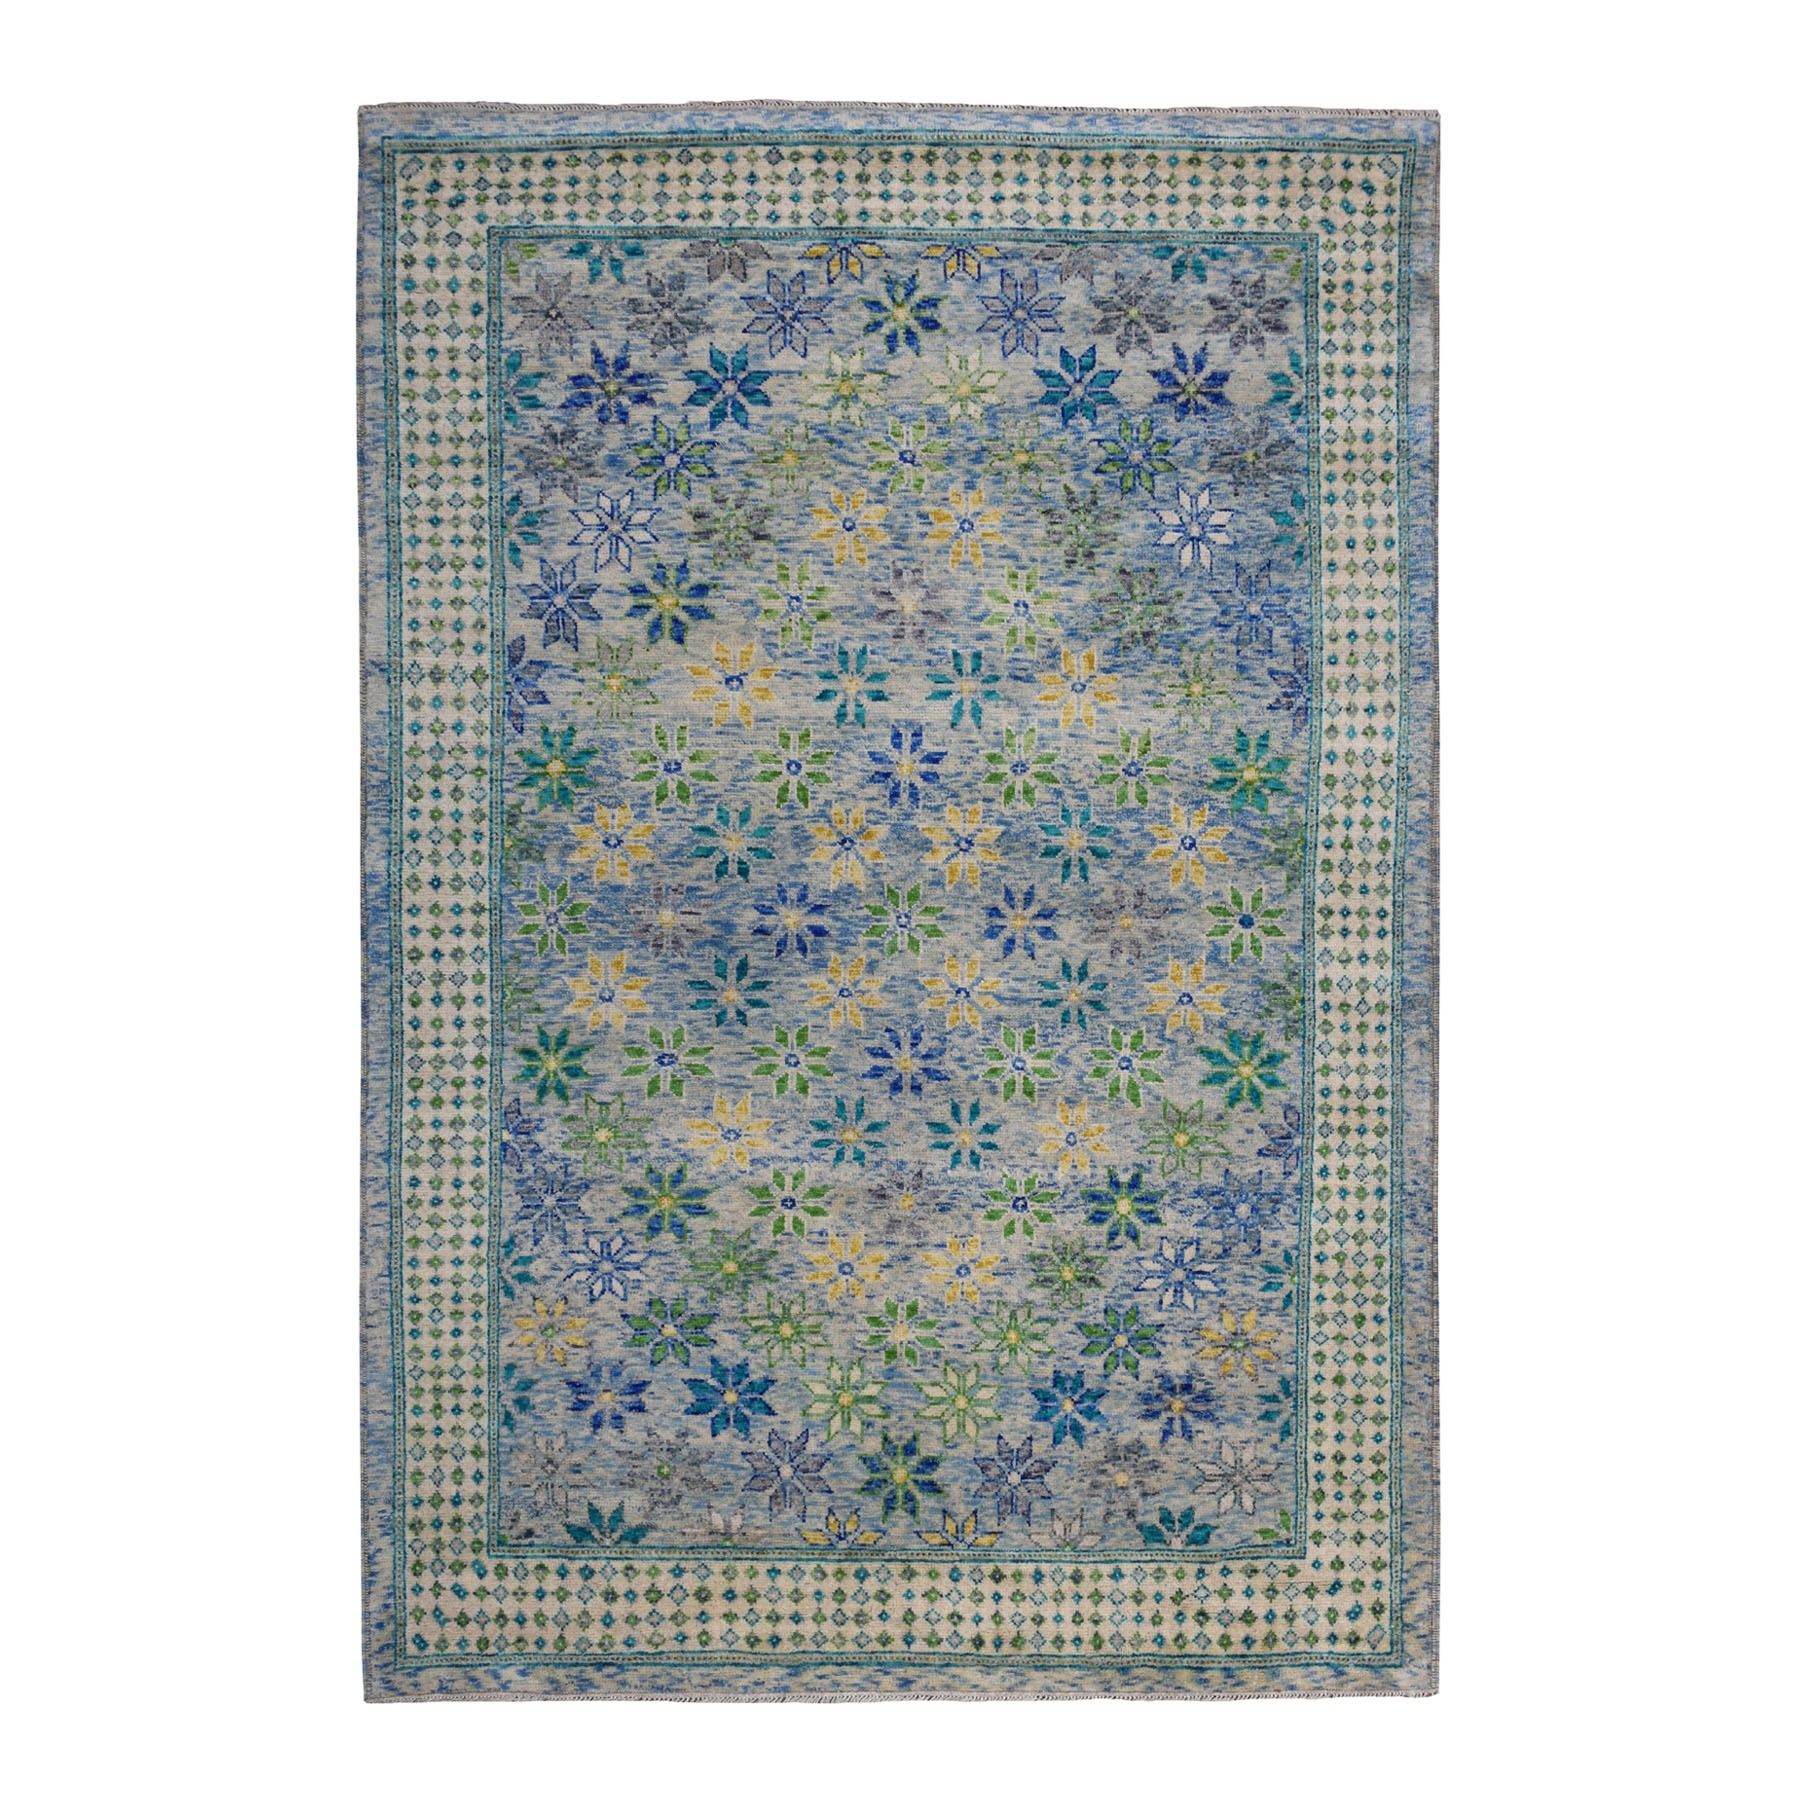 "6'6""x9'10"" Green All Over Design Colorful Afghan Baluch Pure Wool Hand Knotted Oriental Rug"